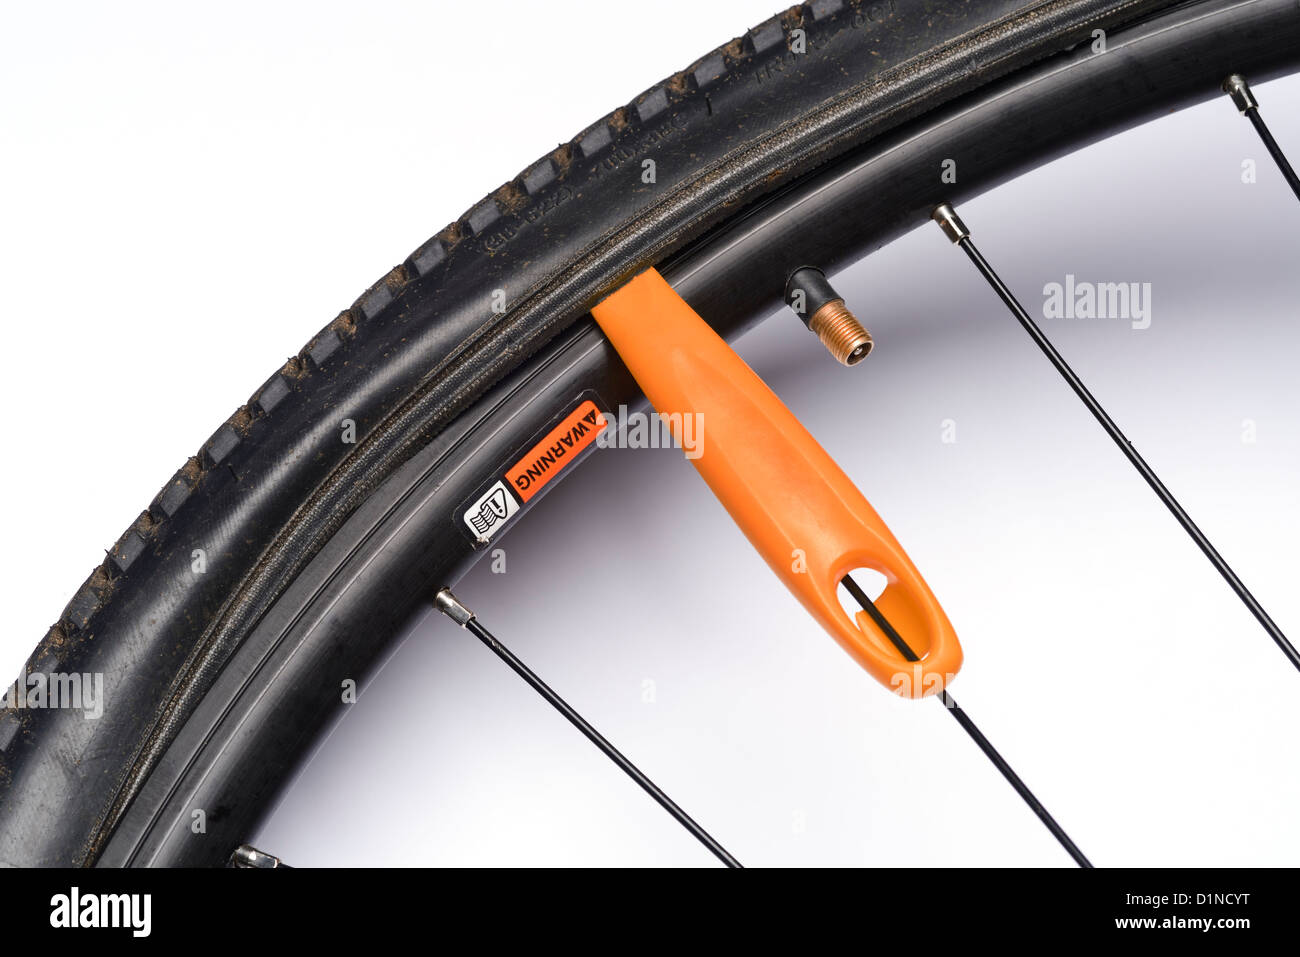 Tyre lever removing a bicycle tyre - Stock Image